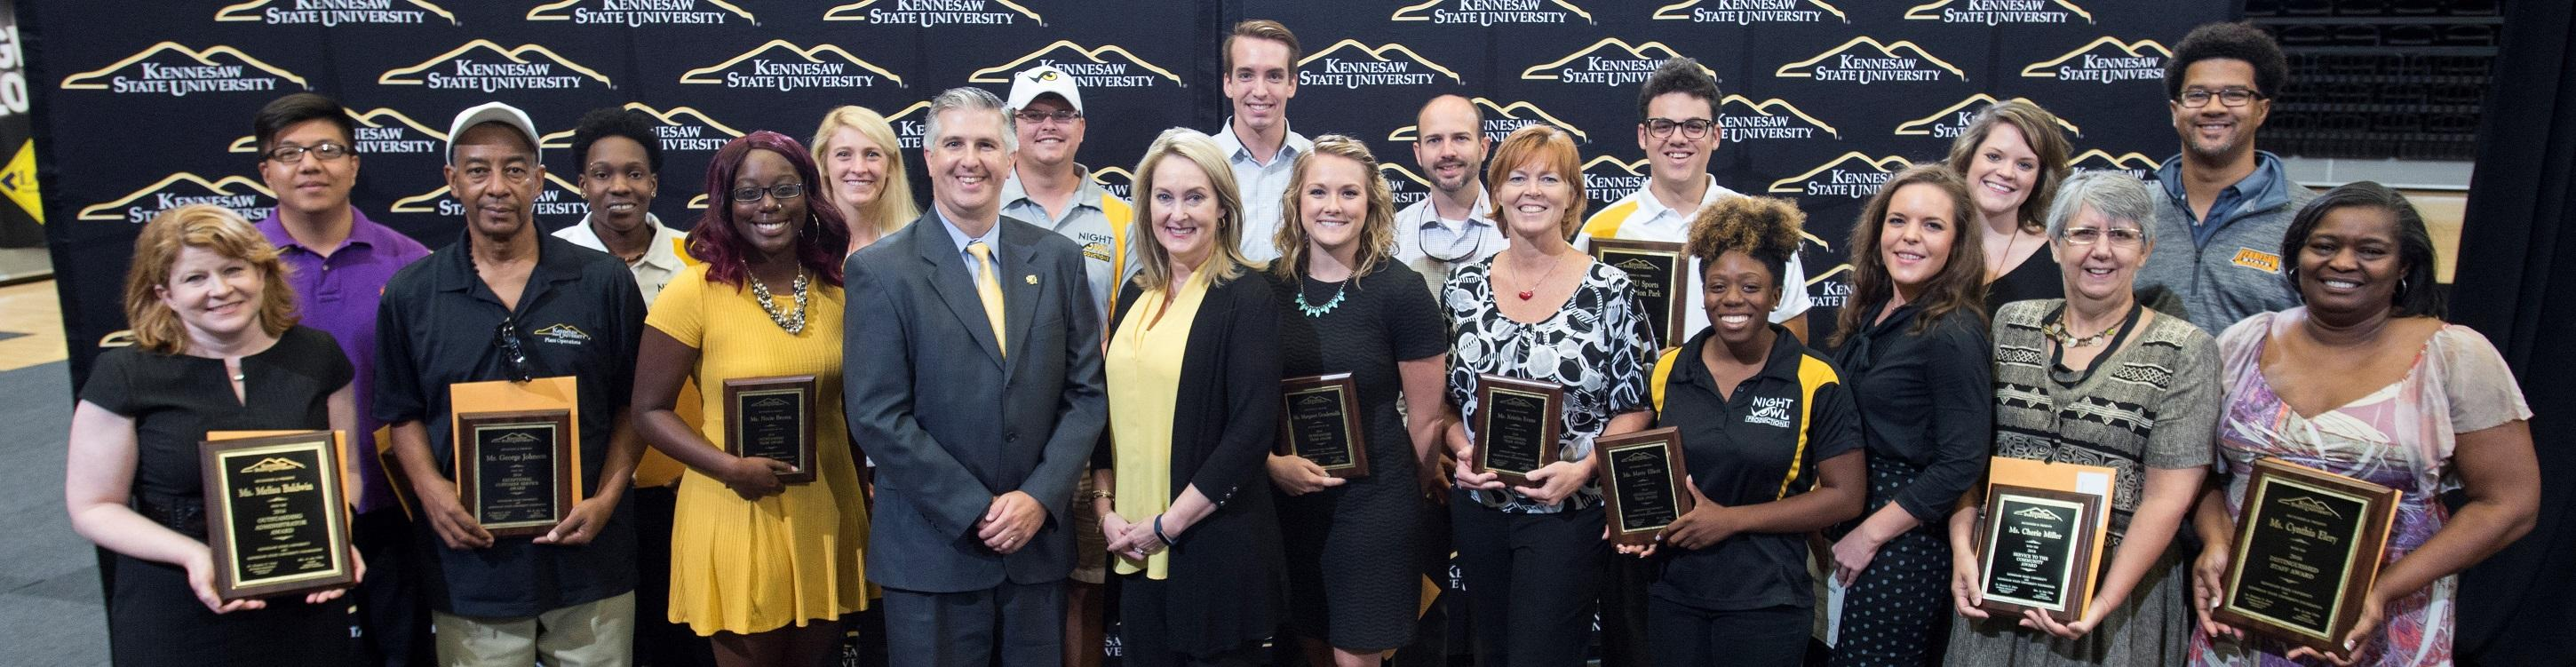 2016 Staff Award Winners